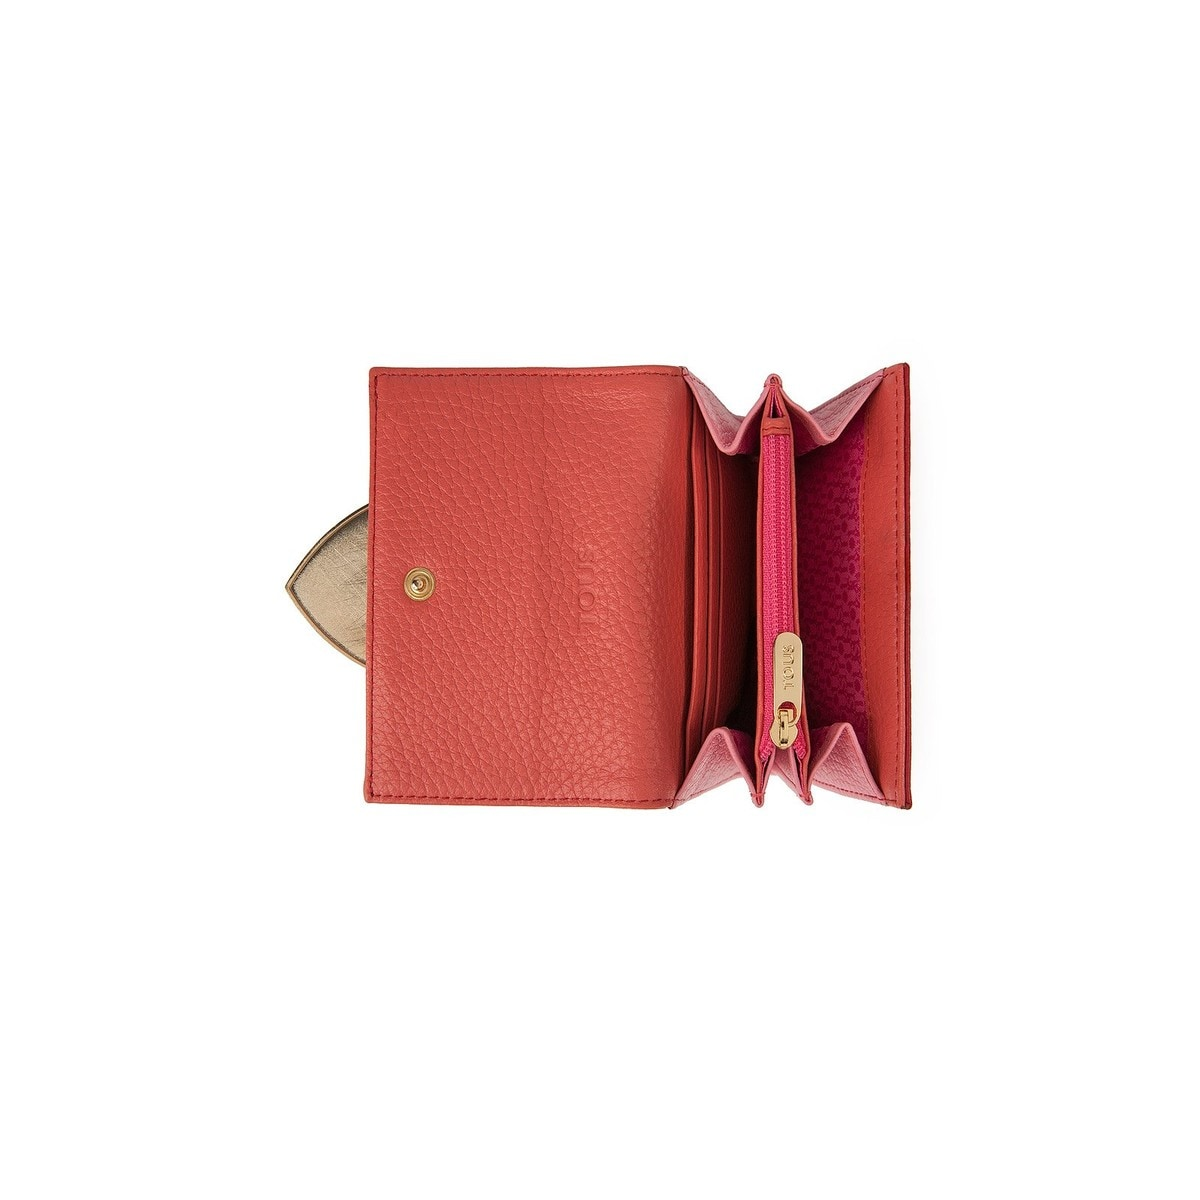 Love Day Wallet in Leather